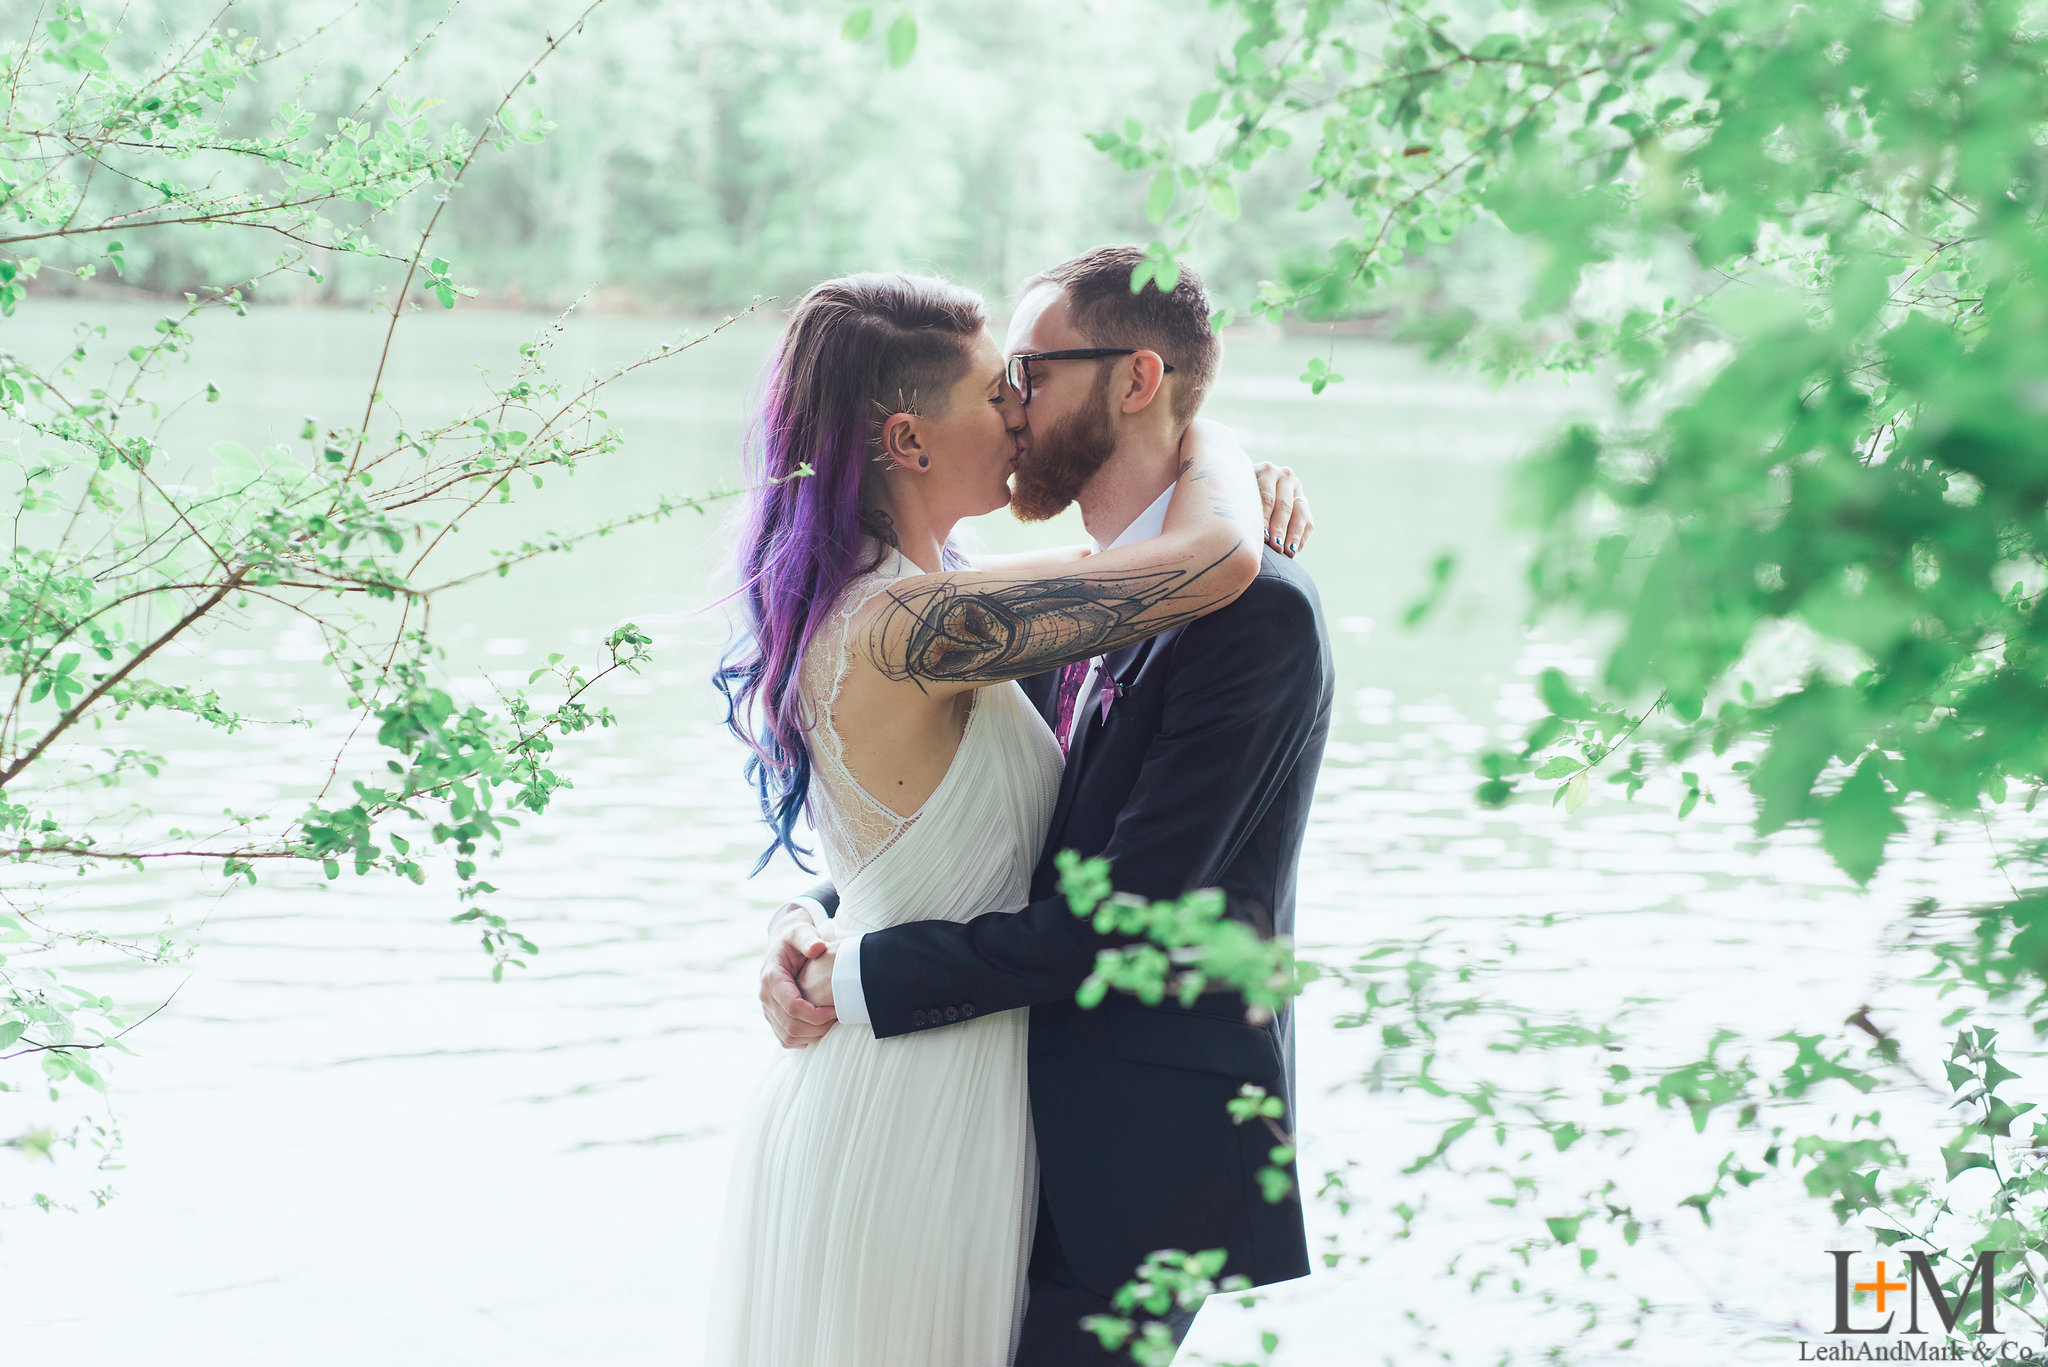 Atlanta Wedding Photographer | LeahAndMark & Co. | Roswell River Landing